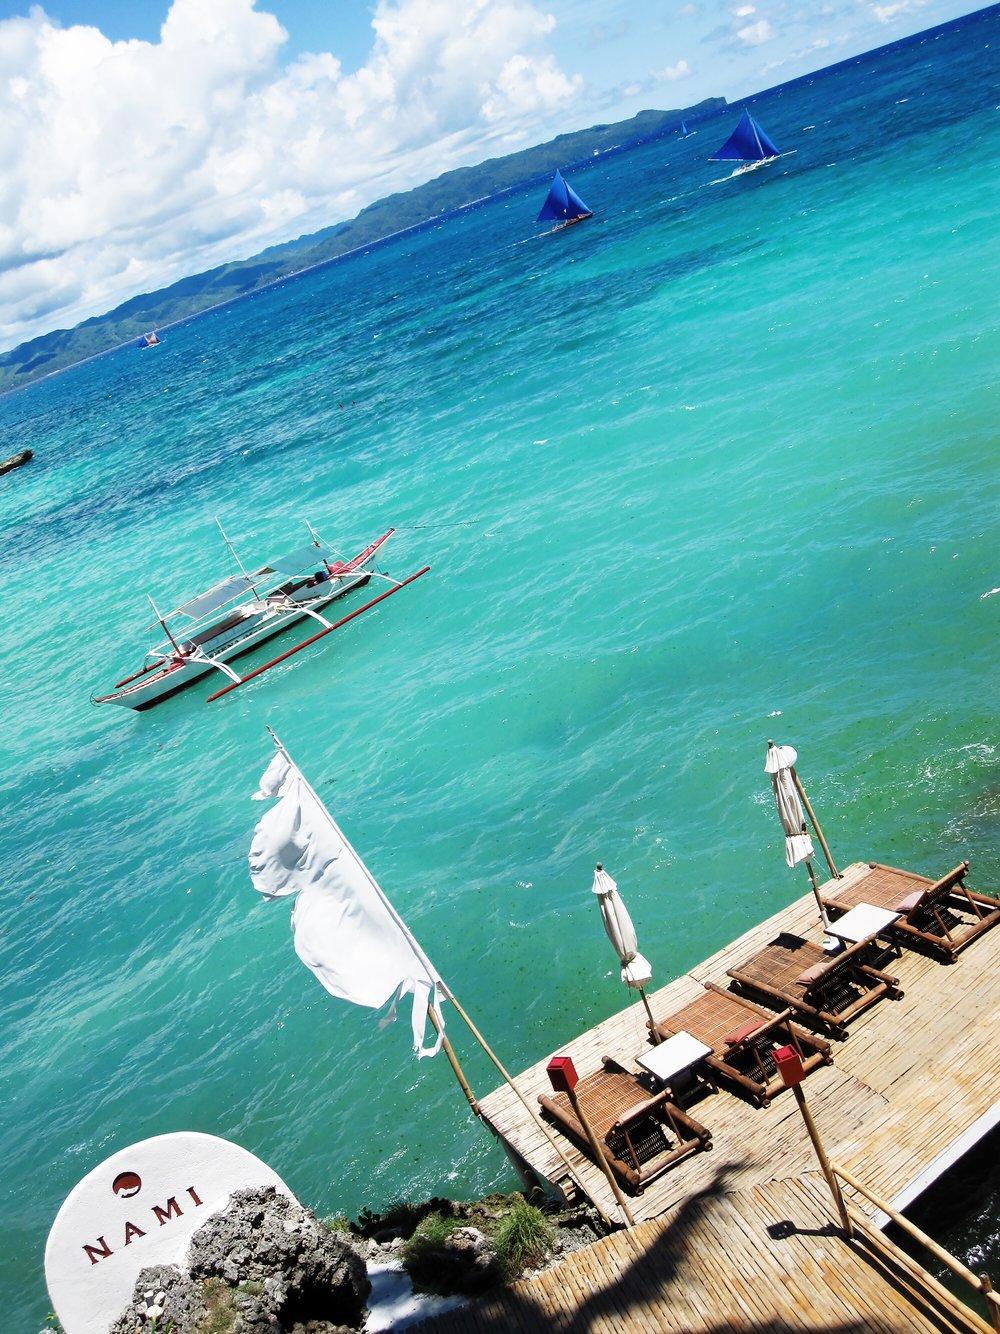 View from Nami Resort in Boracay